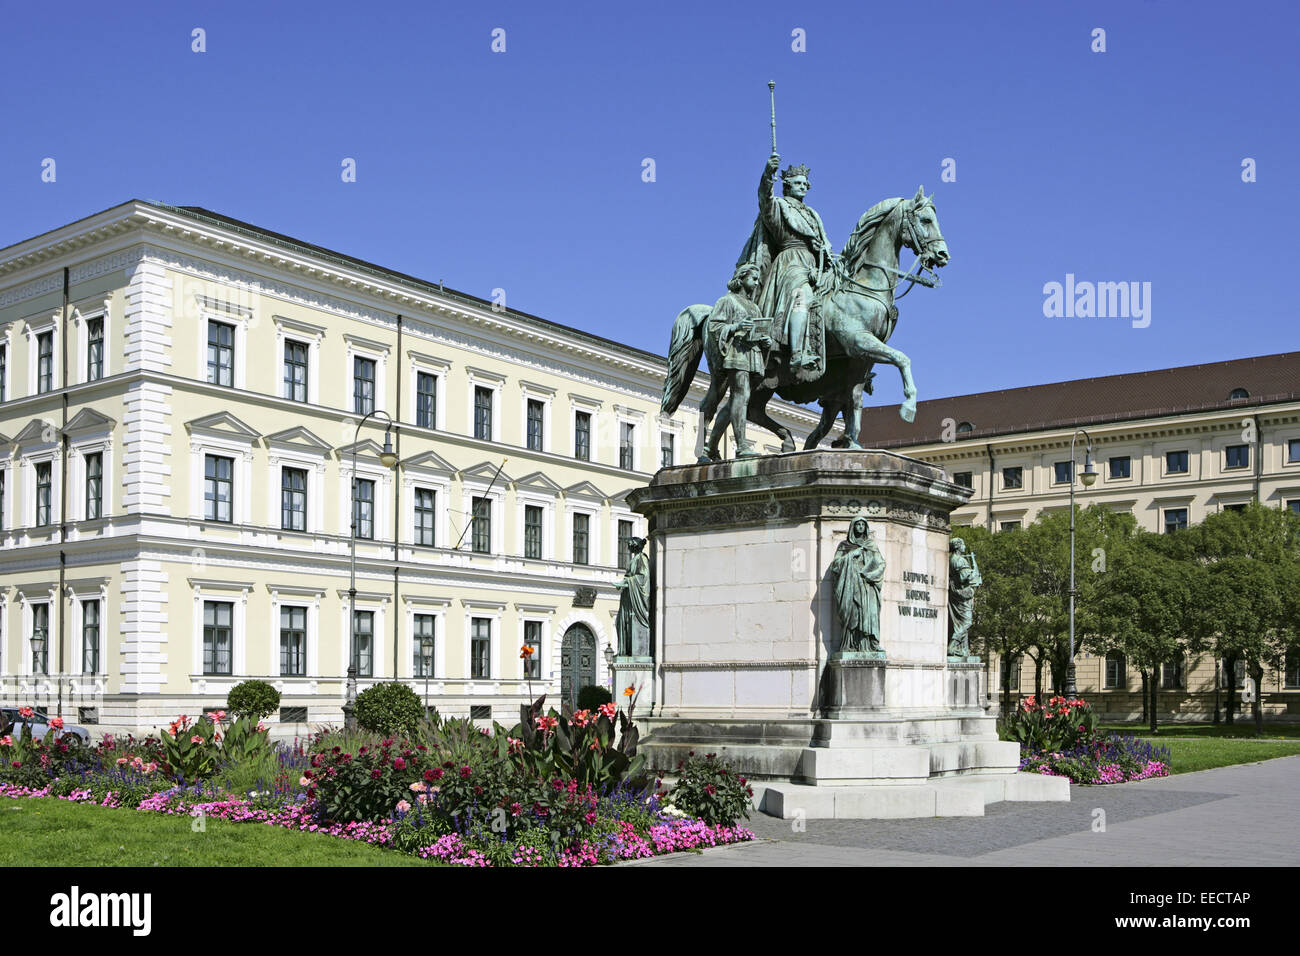 monument ludwig king bavaria munich stockfotos monument ludwig king bavaria munich bilder alamy. Black Bedroom Furniture Sets. Home Design Ideas